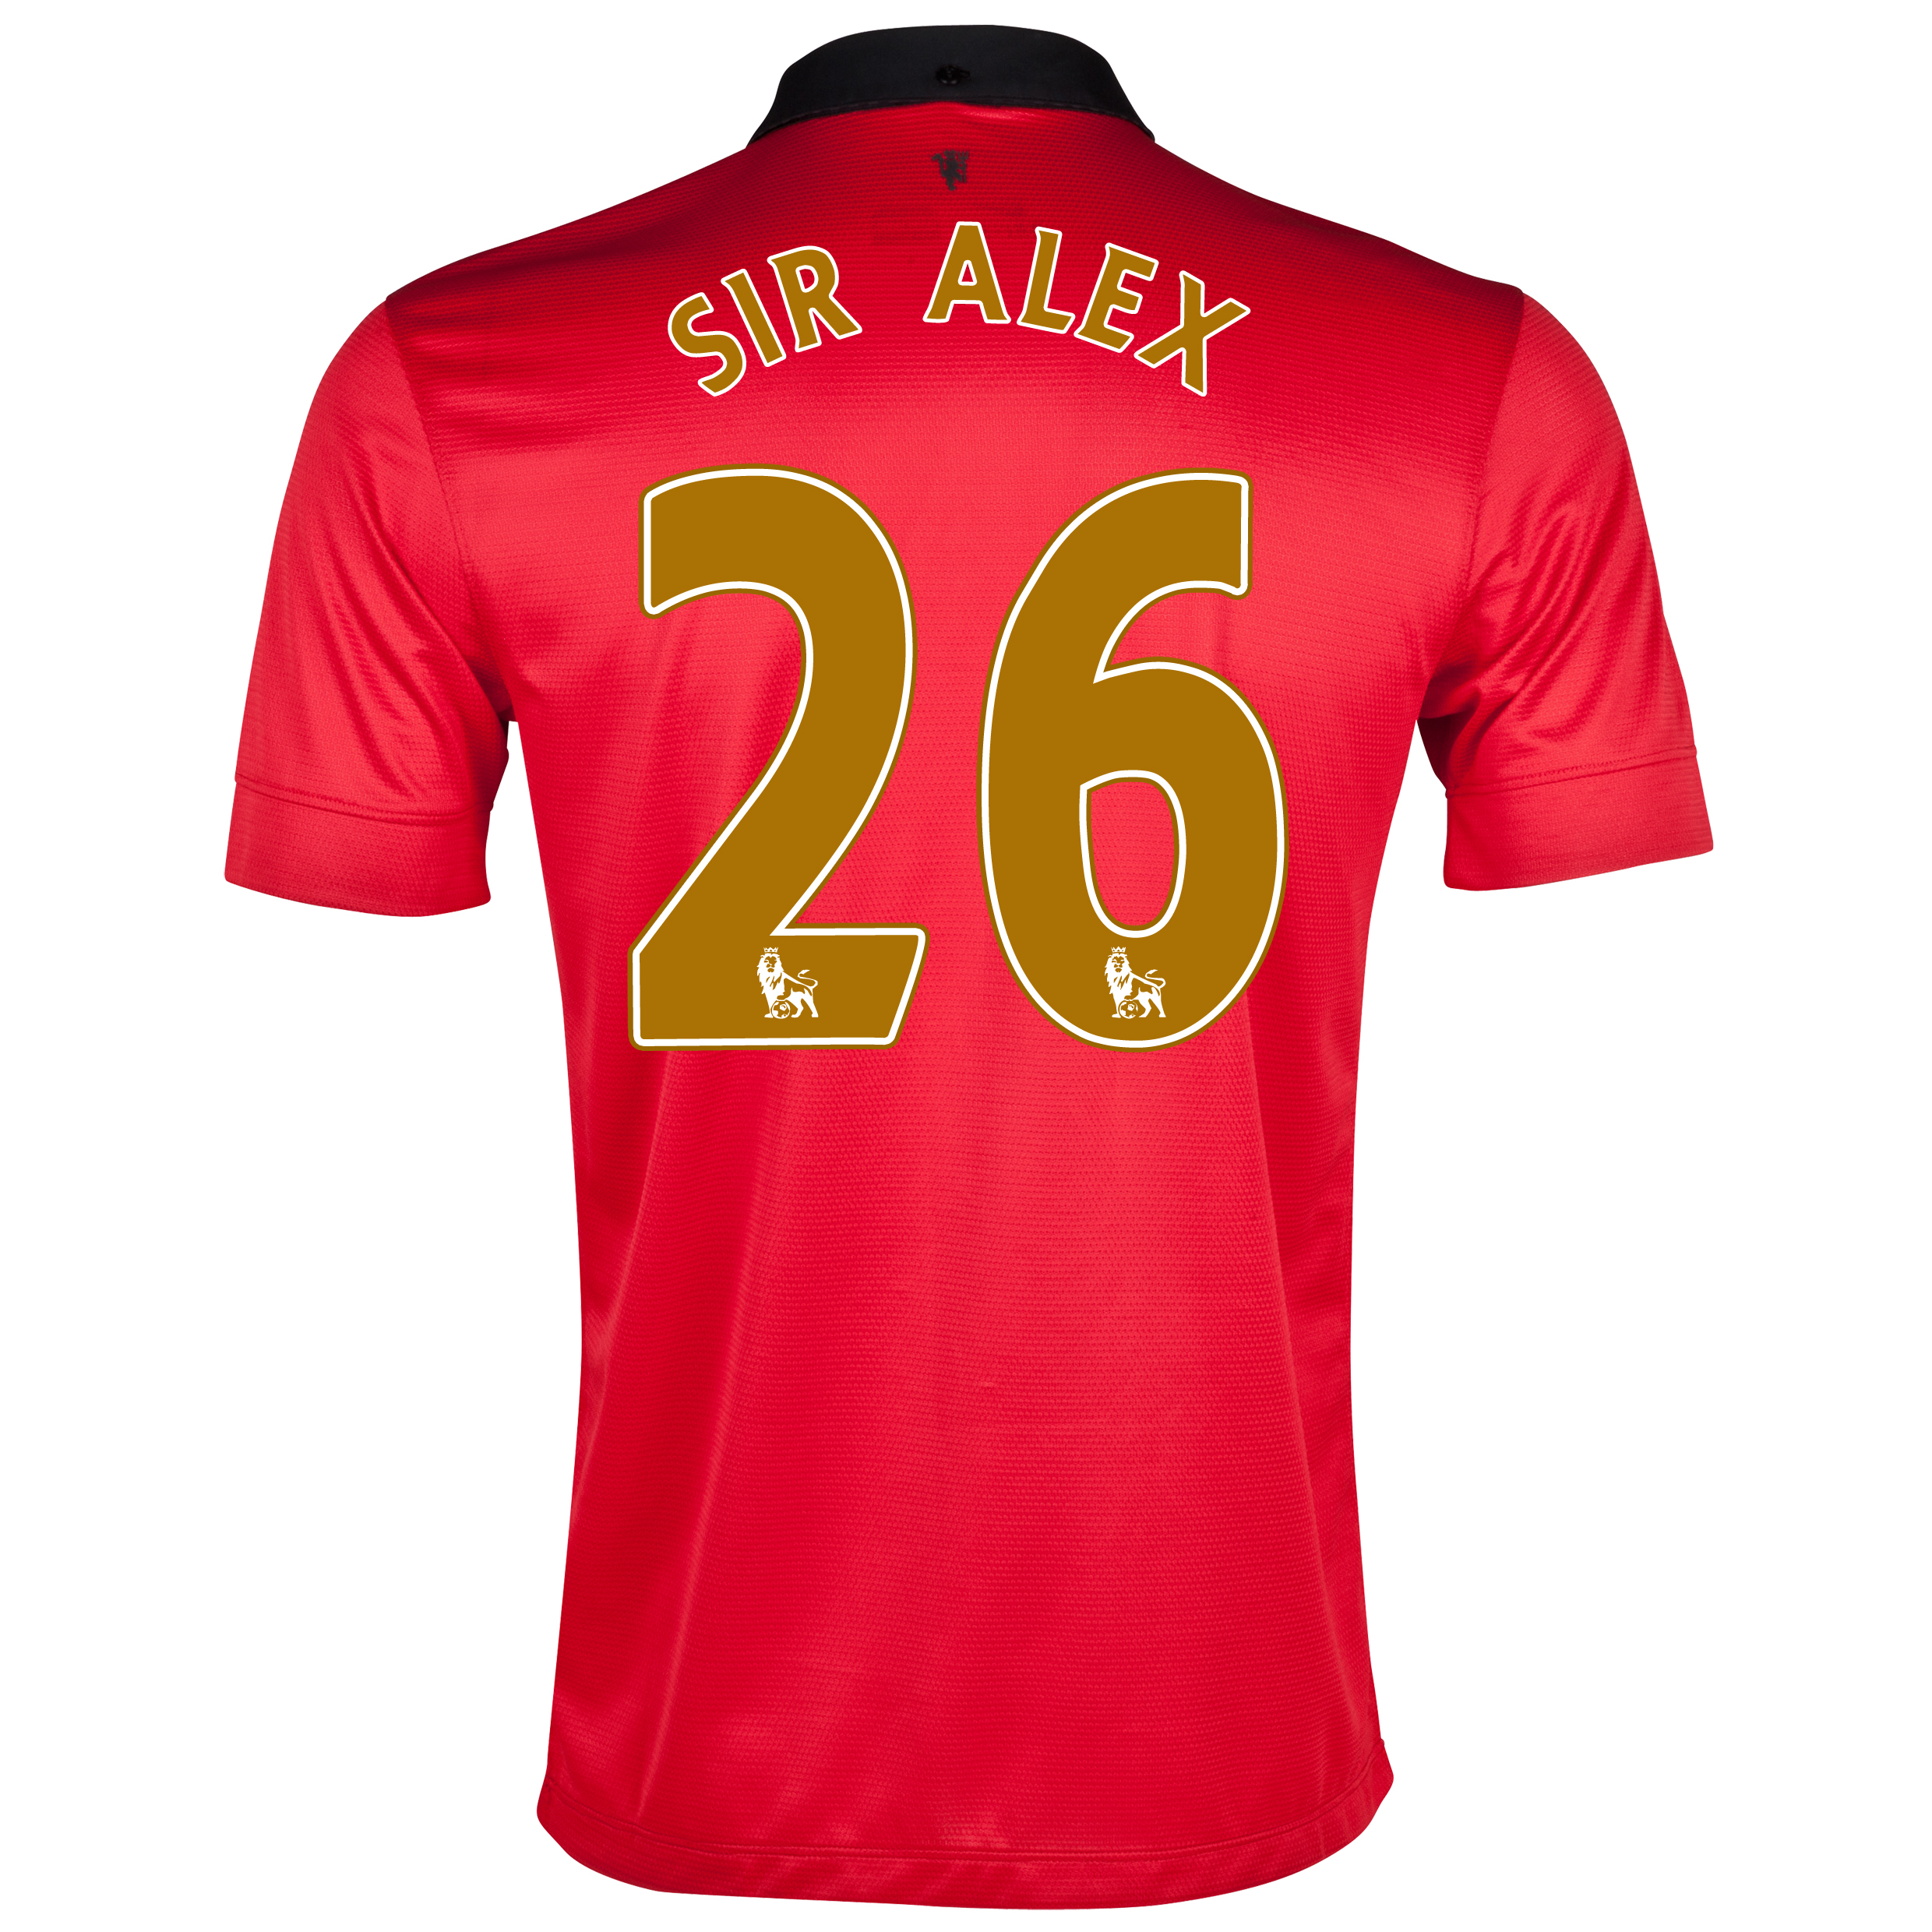 Manchester United Home Shirt 2013/14 with Sir Alex 26 printing